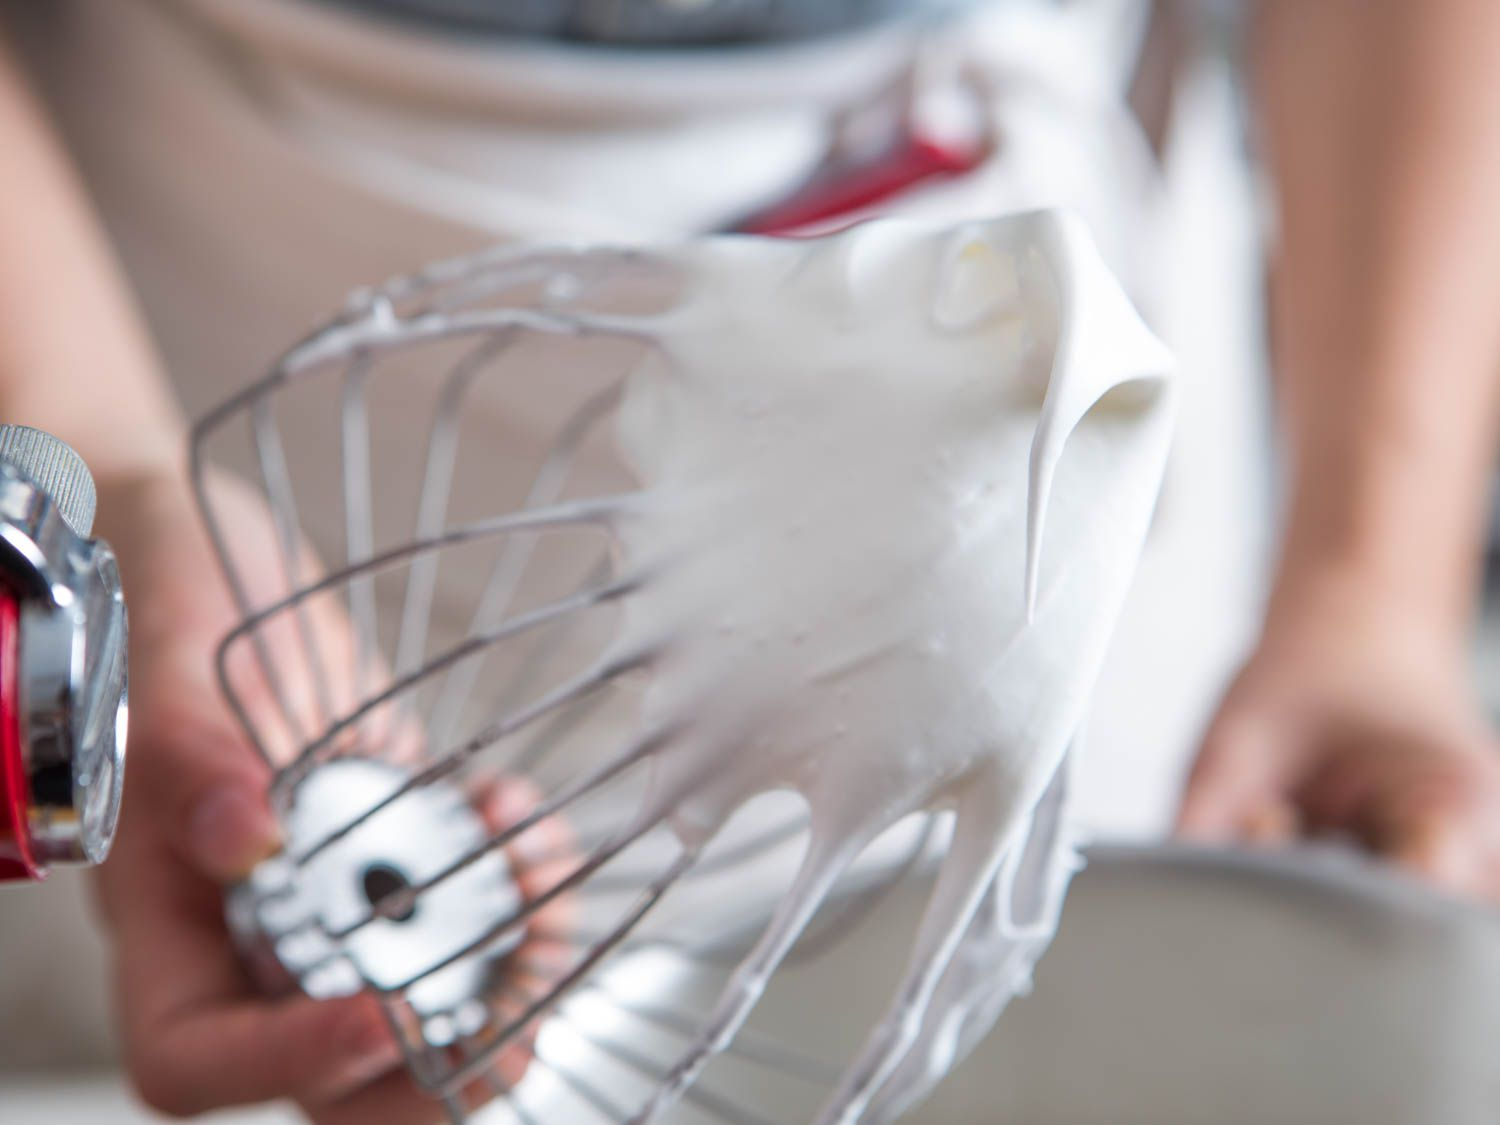 Hand holding a stand mixer whisk attachment with stiffly beaten egg whites and sugar on it.